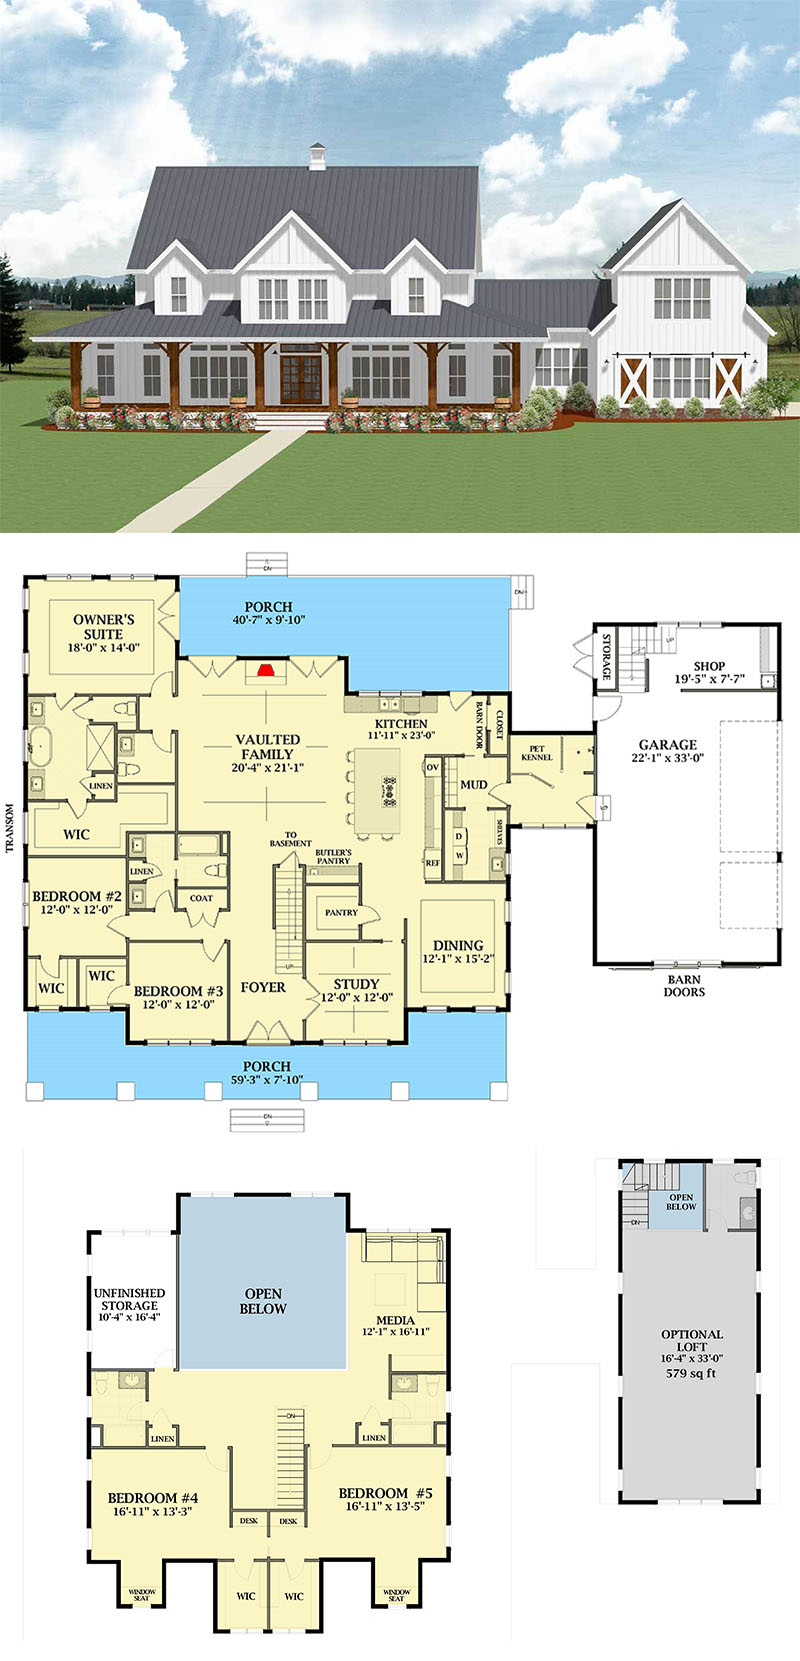 Most Popular Farmhouse Plans - Blueprints, layouts and details of the best farmhouses on the market. Building your dream home in the country? Get all your needs here! #farmhouseplans #farmhouse #blueprints #layouts